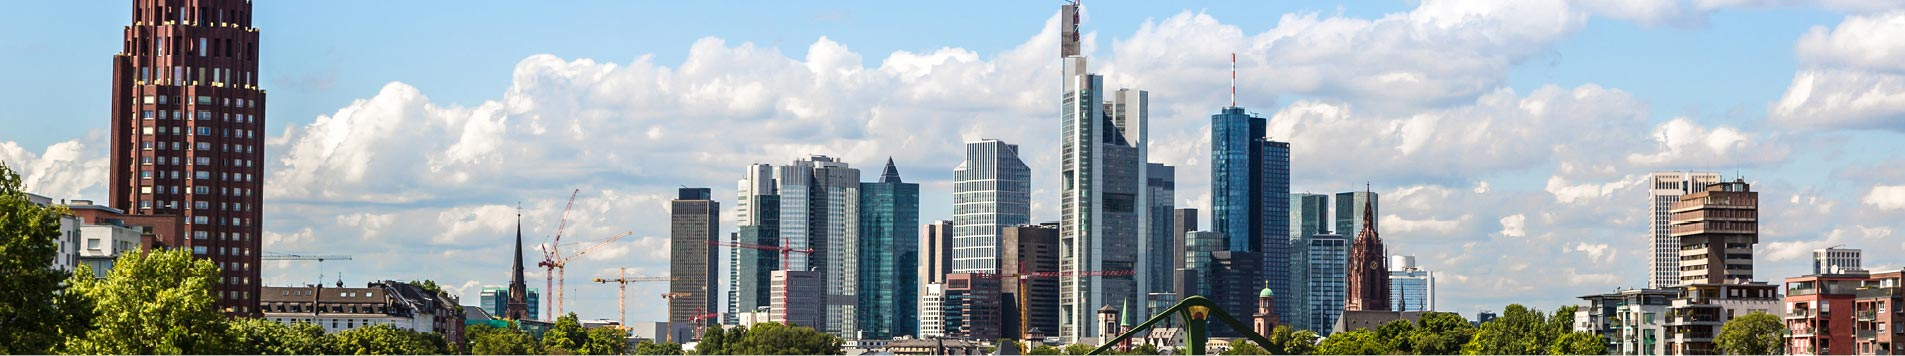 HV-Backoffice Frankfurt am Main